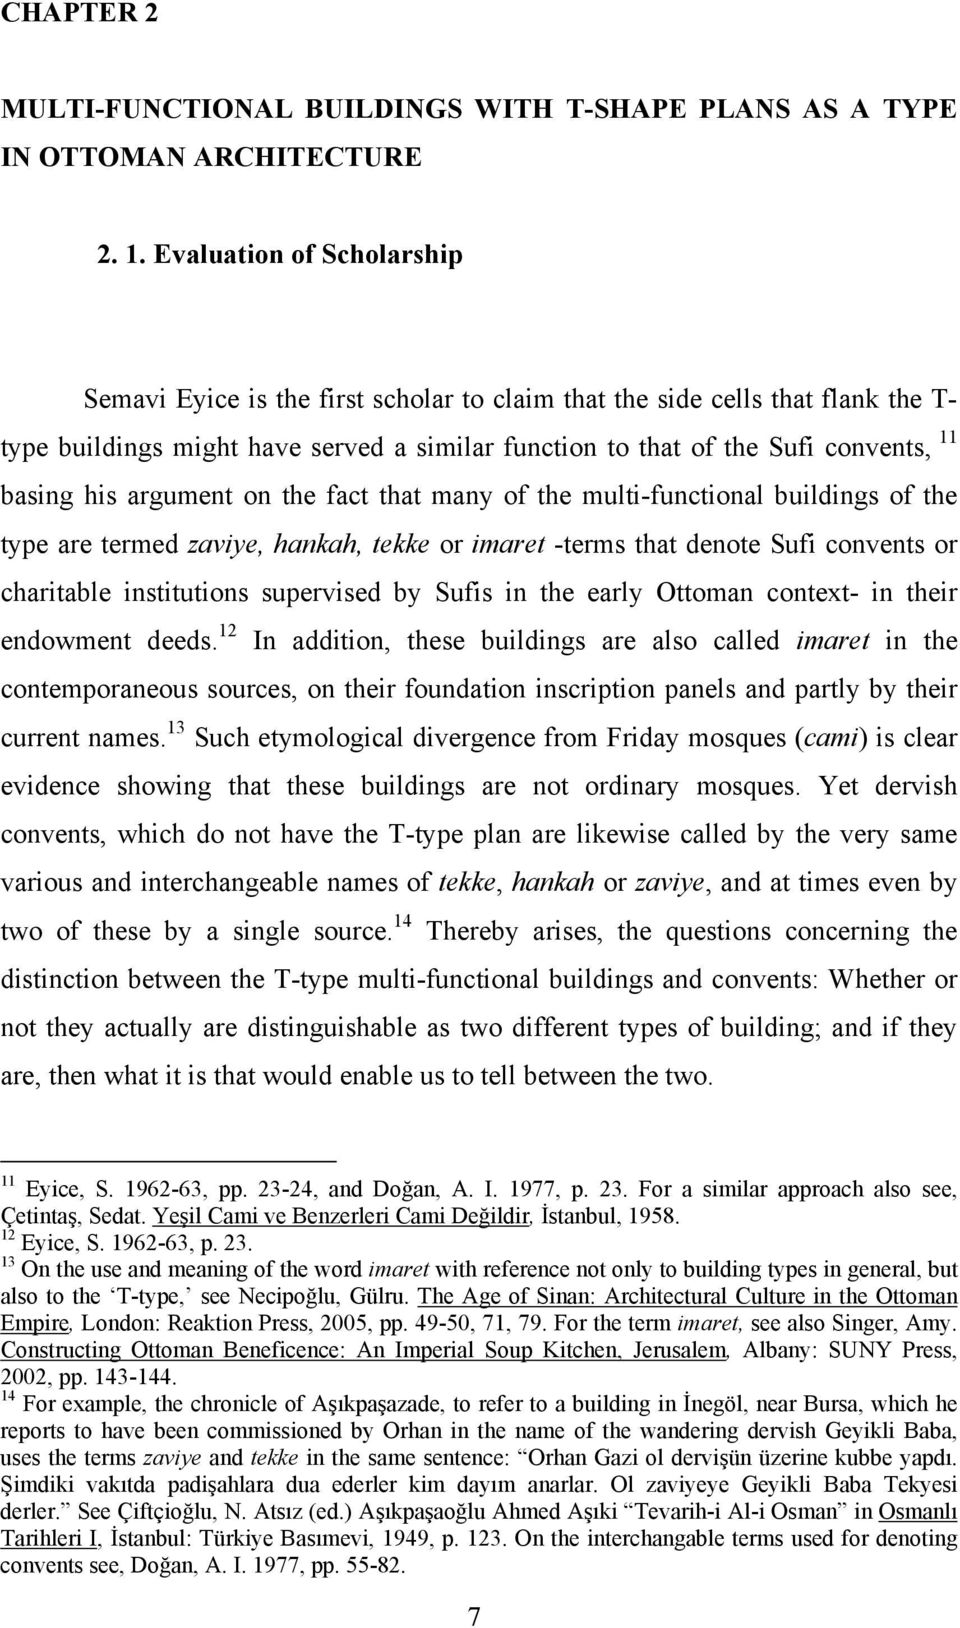 his argument on the fact that many of the multi-functional buildings of the type are termed zaviye, hankah, tekke or imaret -terms that denote Sufi convents or charitable institutions supervised by